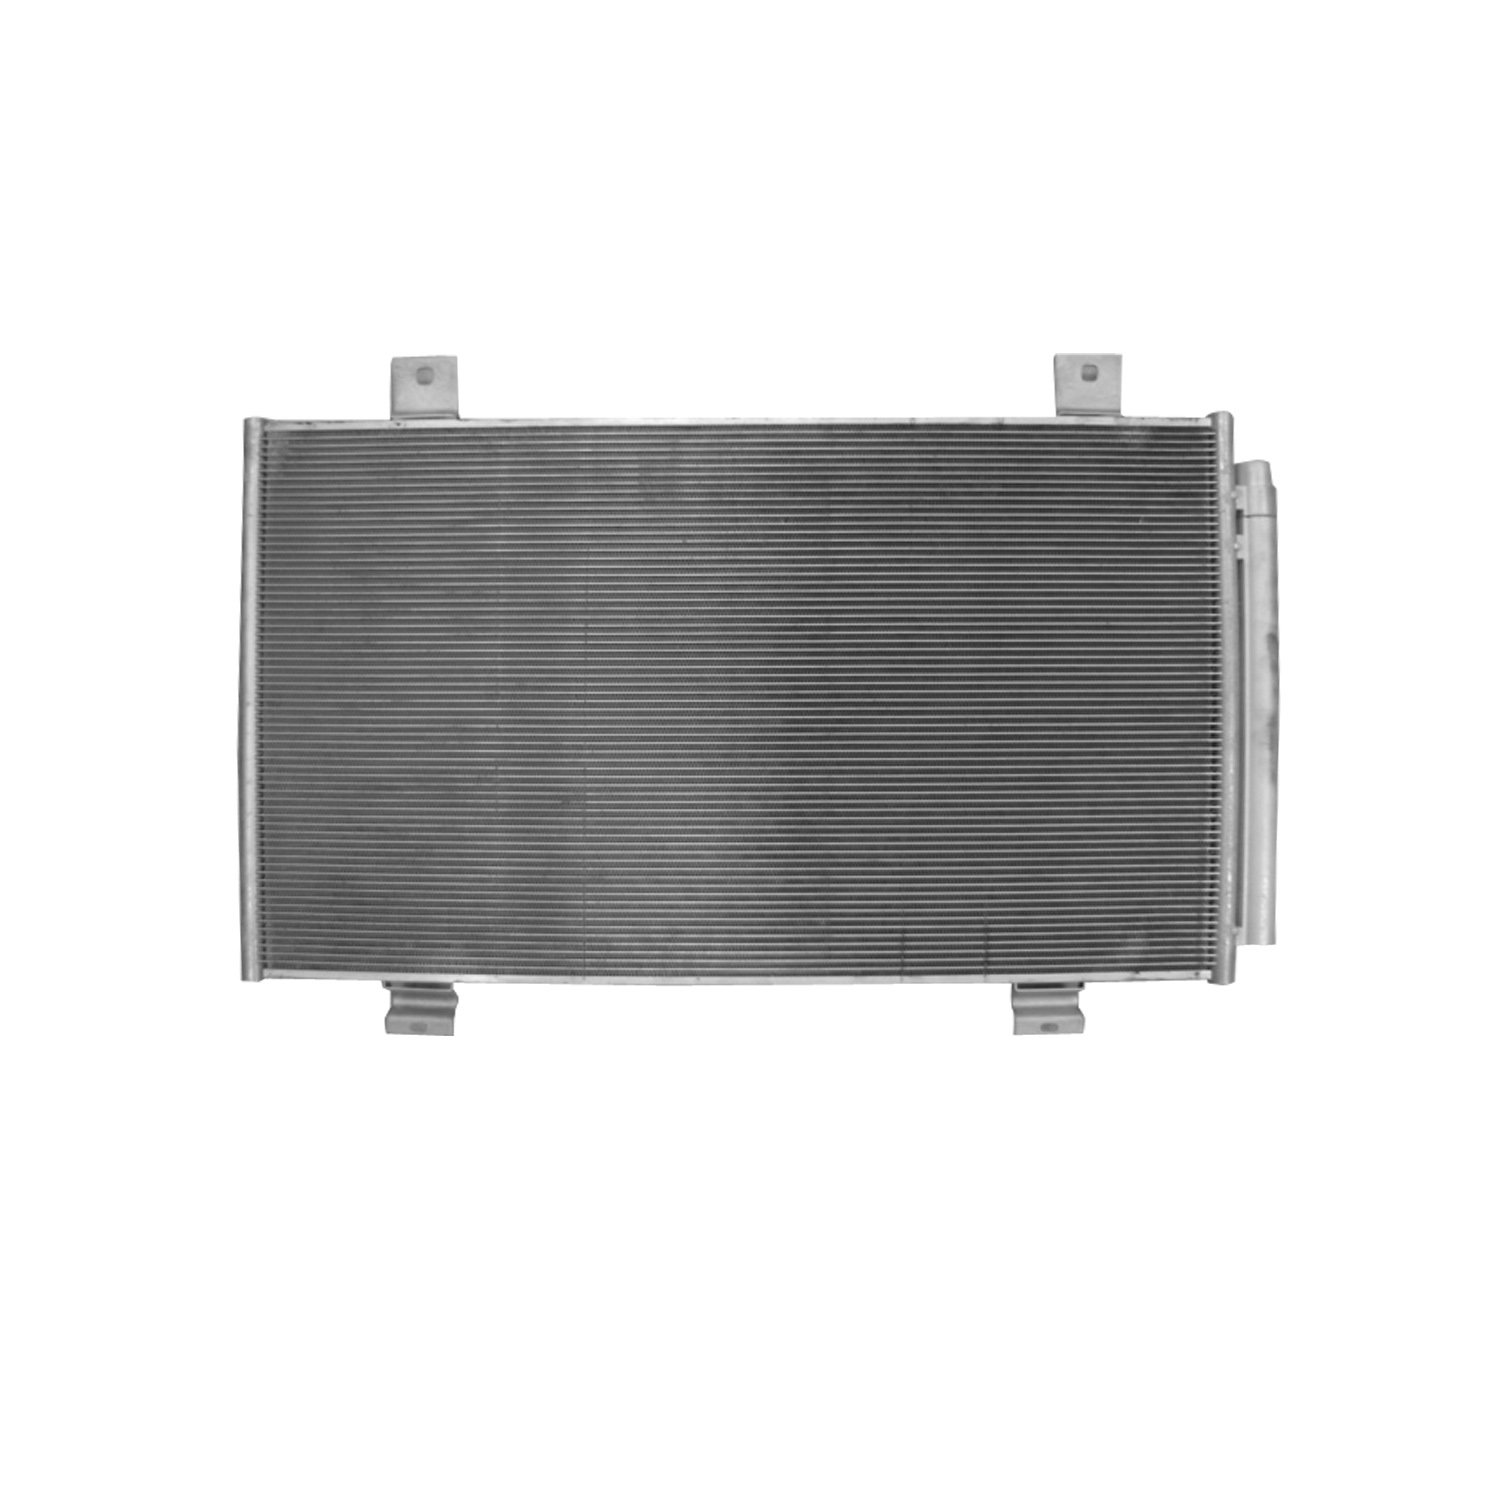 TYC 3974 Replacement Condenser for Toyota